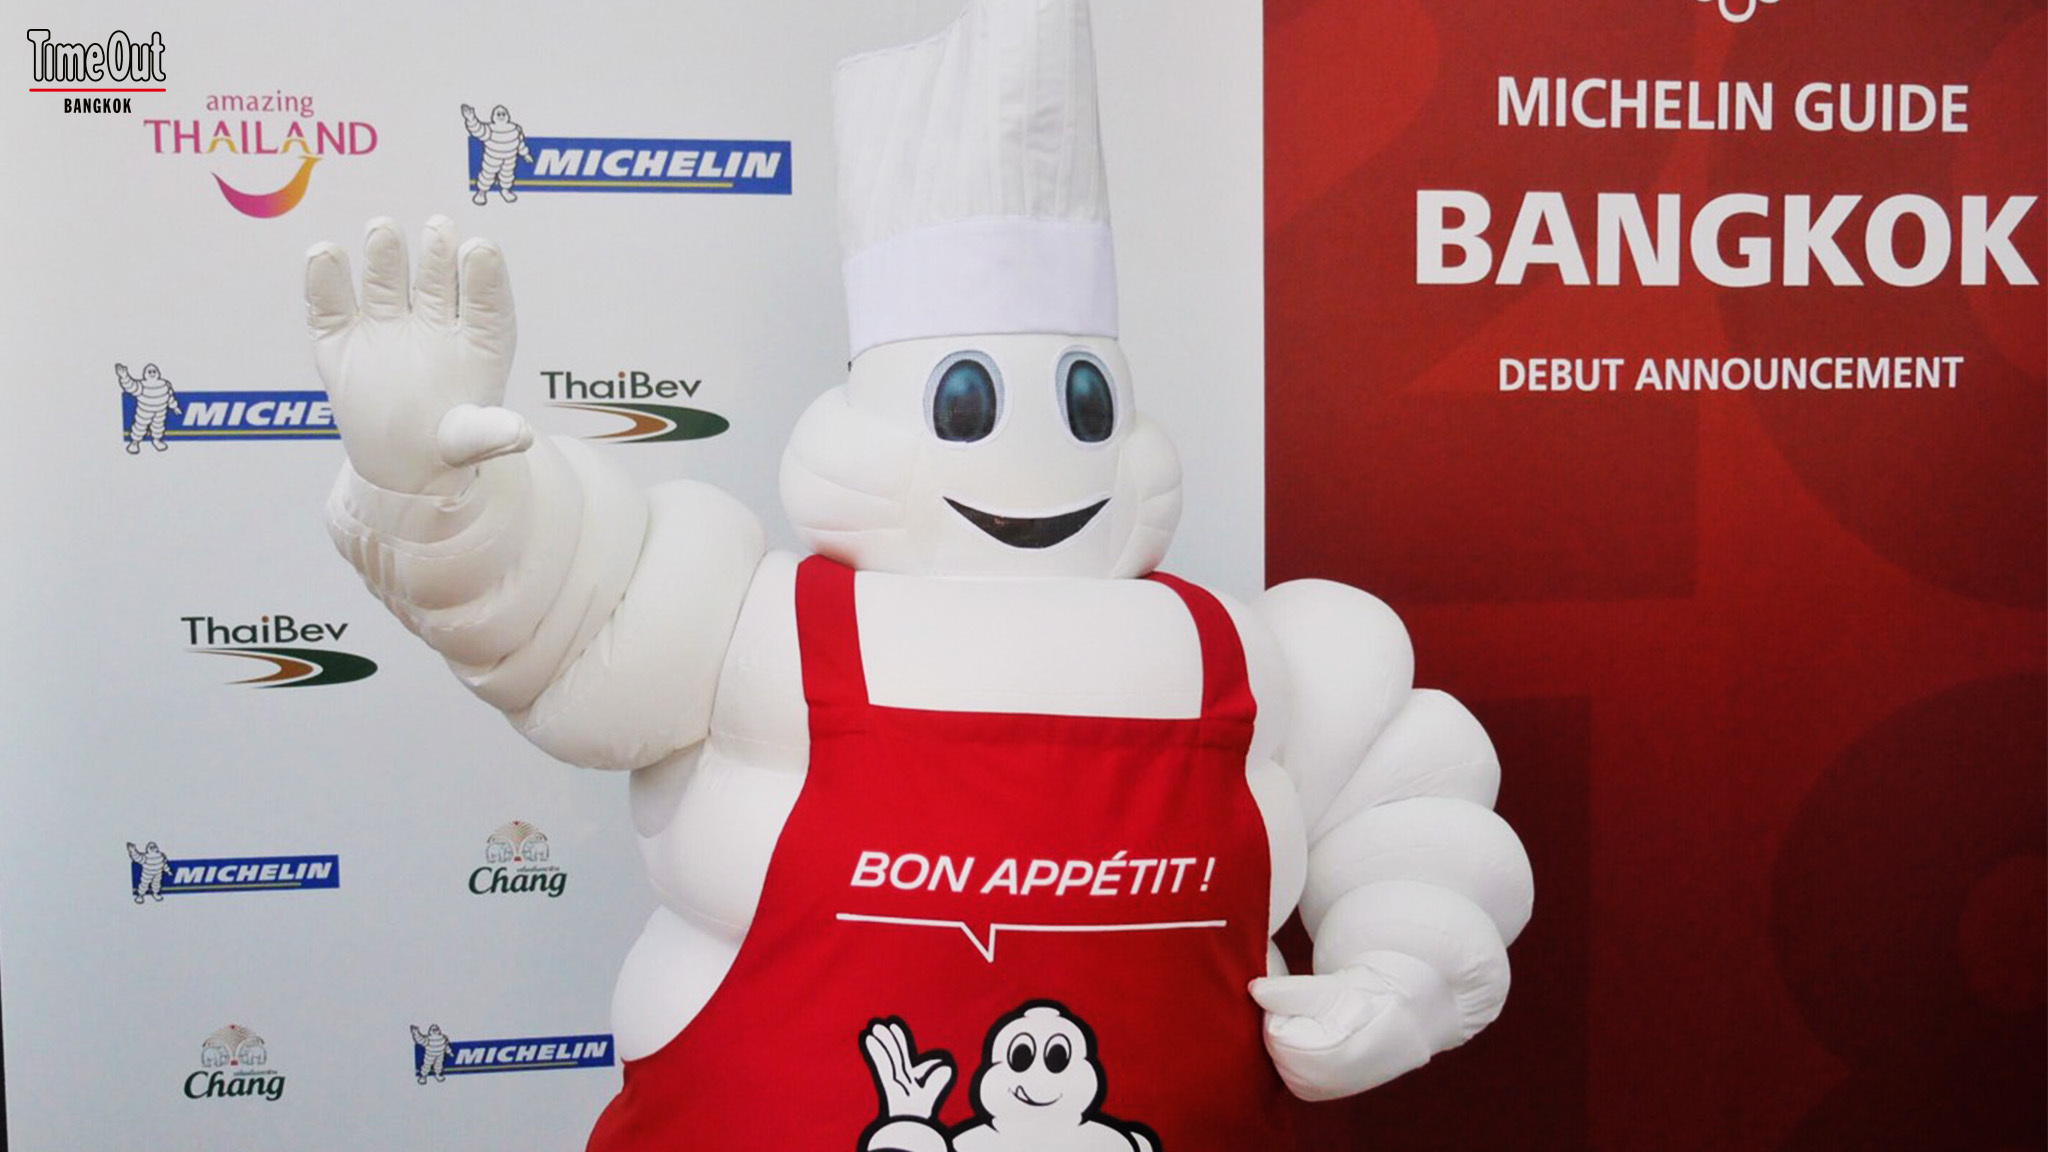 Michelin Guide Bangkok is set to be launched by the end of 2017